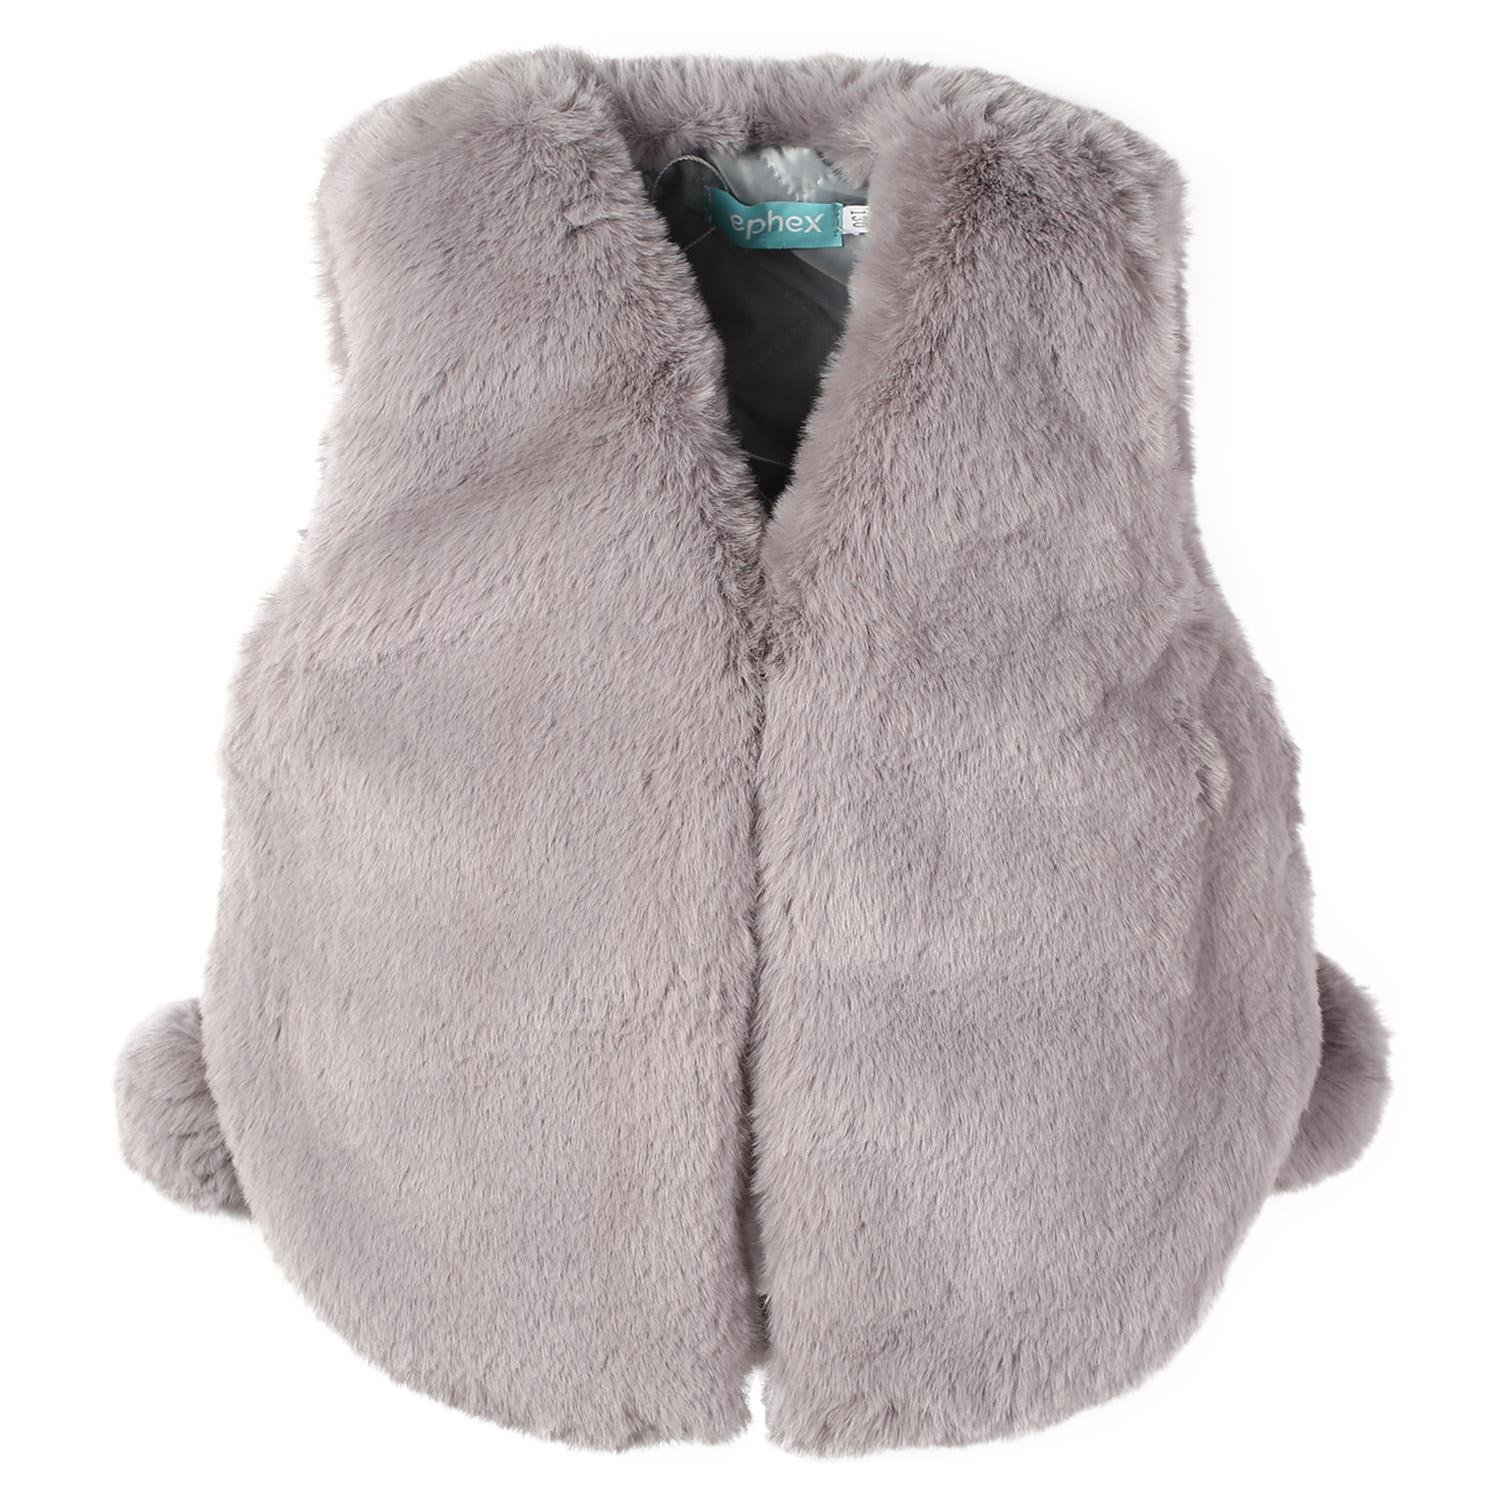 Ephex Toddler Girls Soft Faux Fur Vest Sleeveless Outwear with Cute Ball Age 2 - 11T, Gray, 3 - 4Years/120